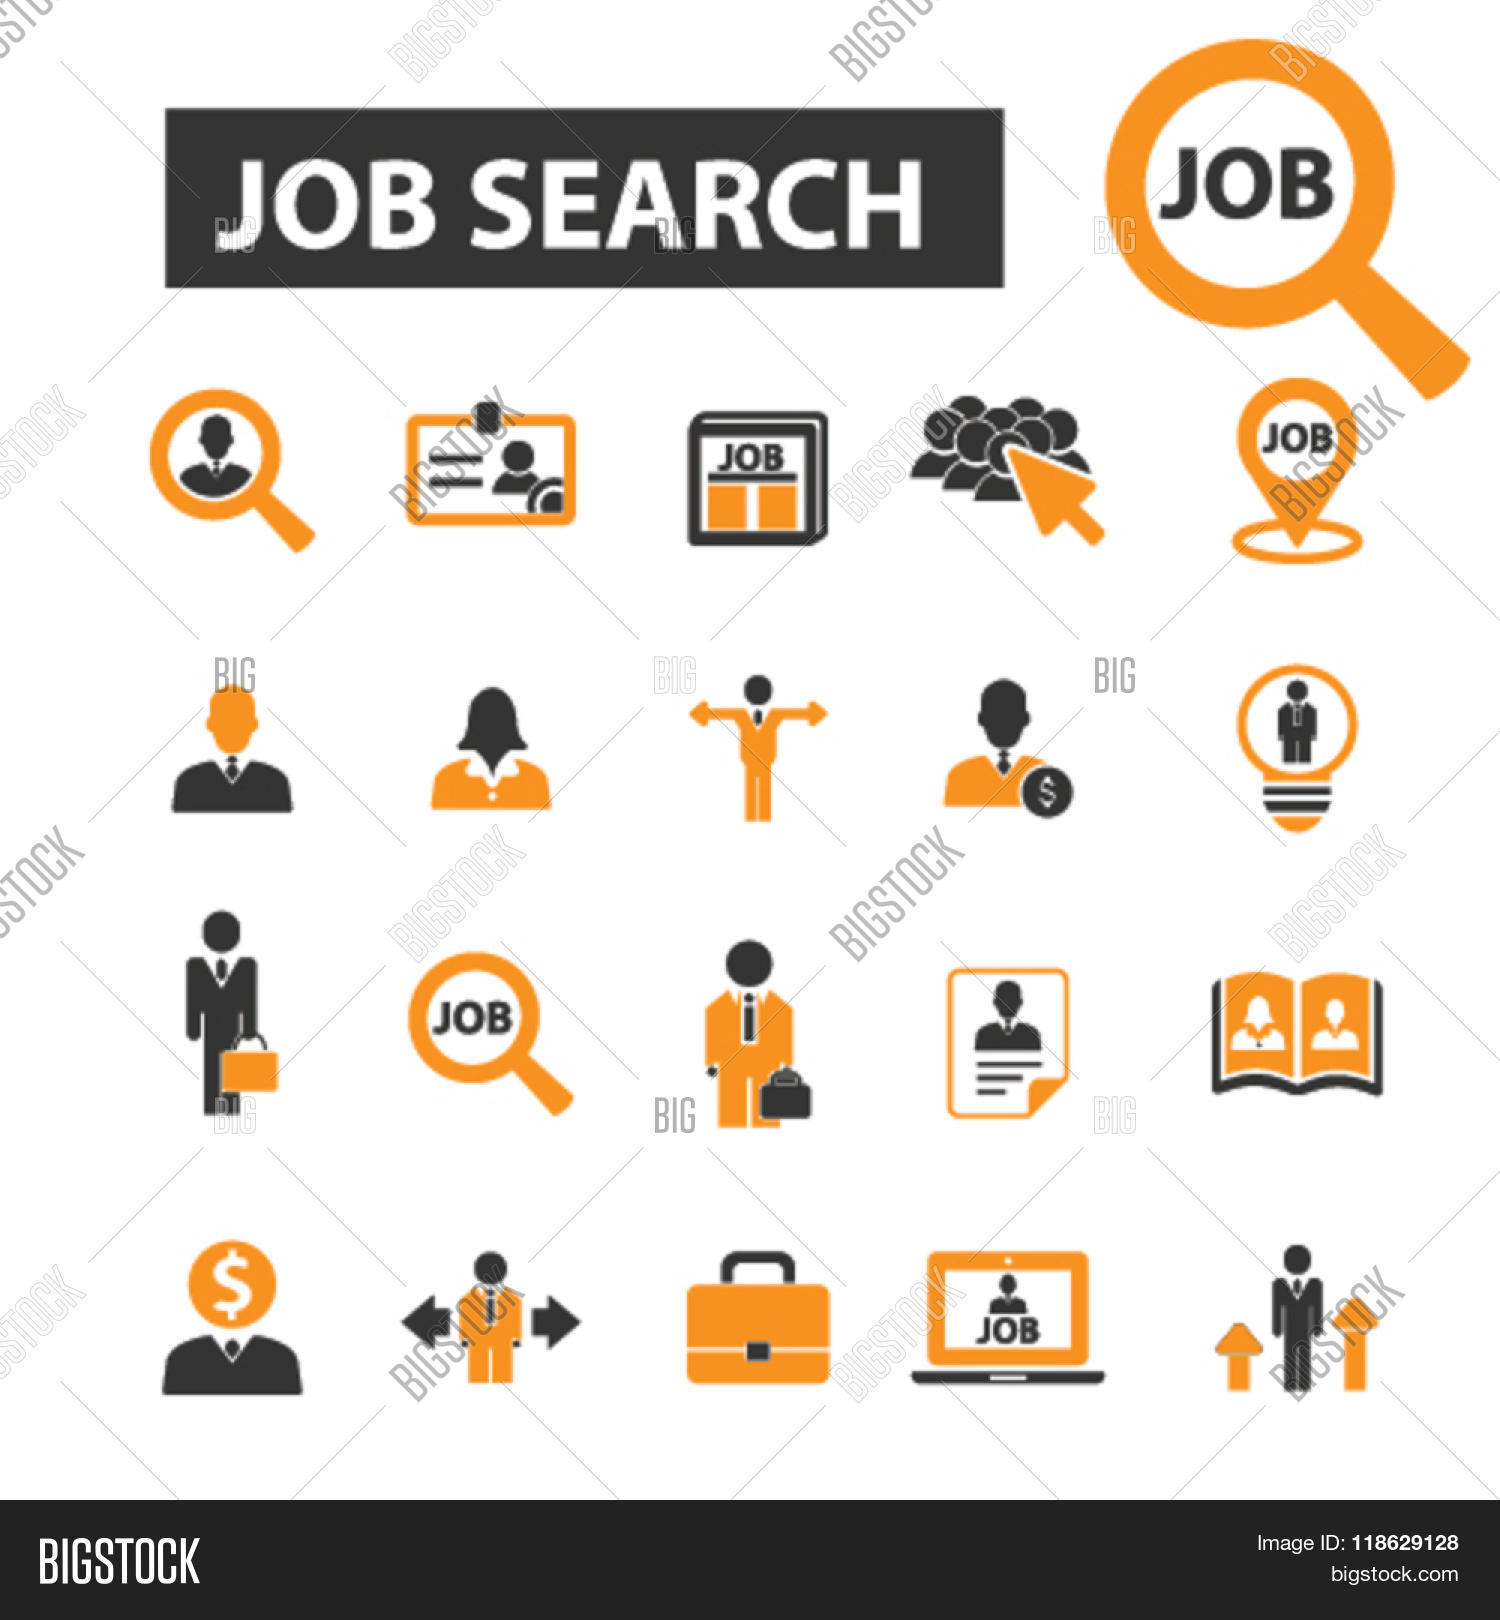 good cv set up sample customer service resume good cv set up an example of a good cv bbc cv logo cv symbols set